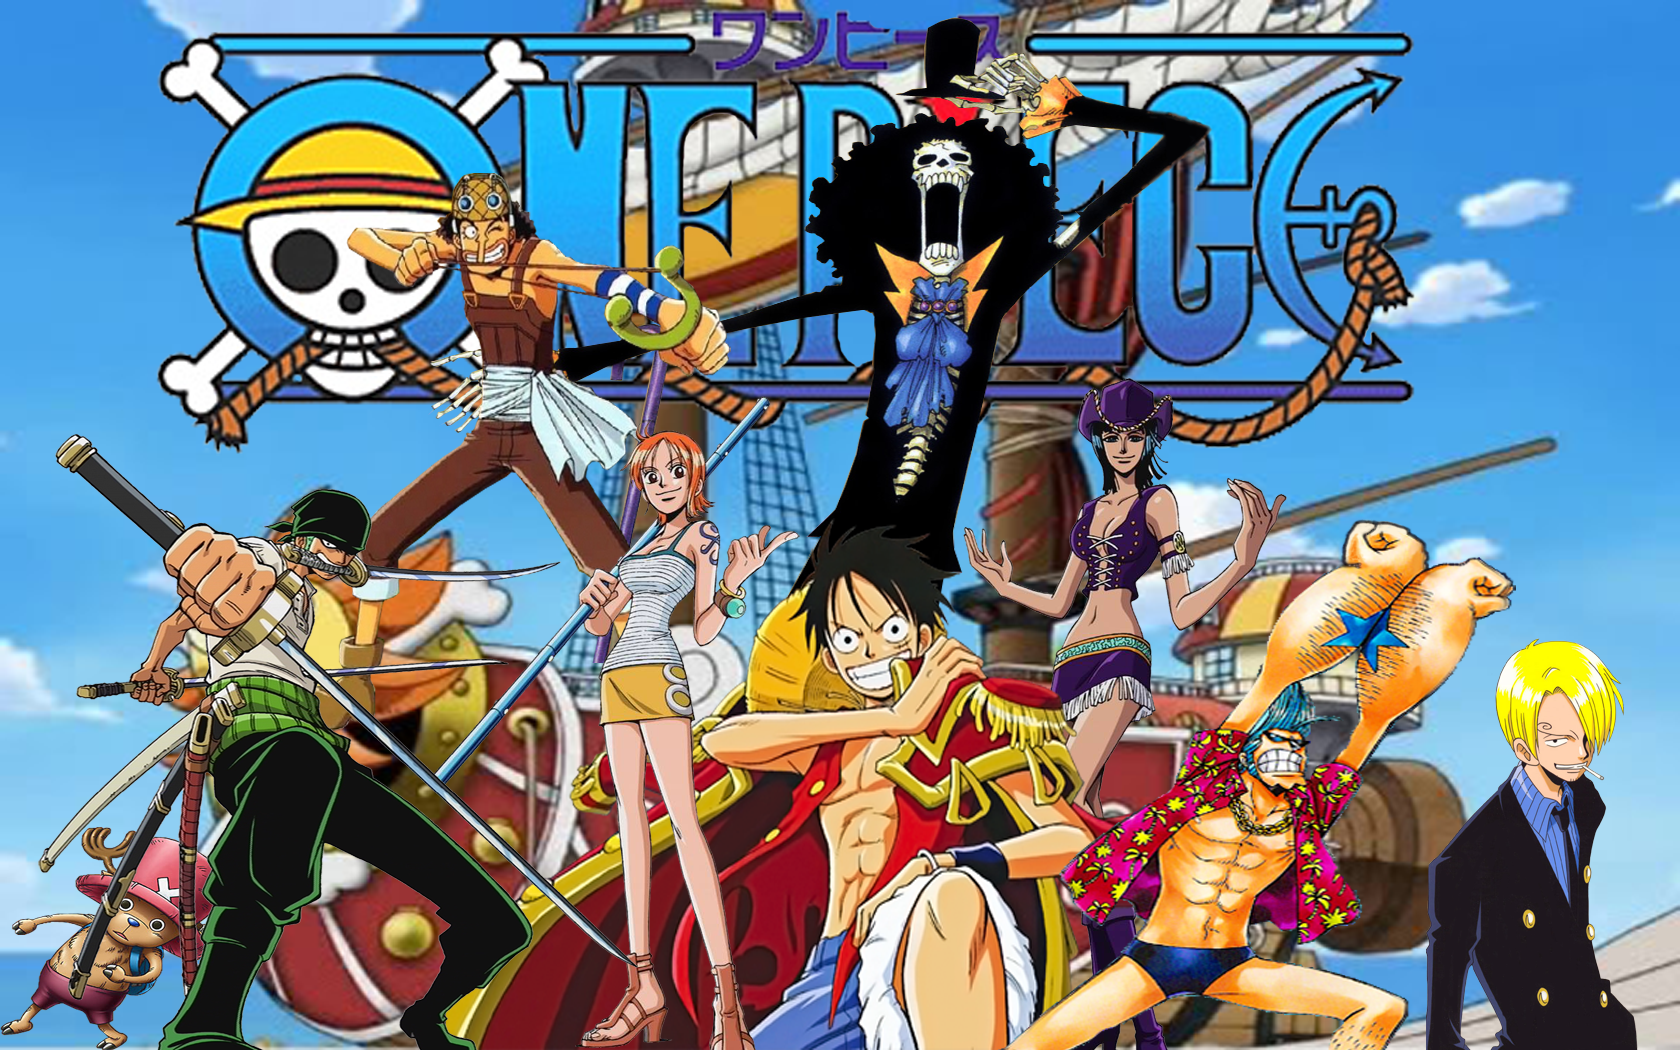 http://vignette2.wikia.nocookie.net/toonami/images/5/5a/One-piece.png/revision/latest?cb=20130413234202